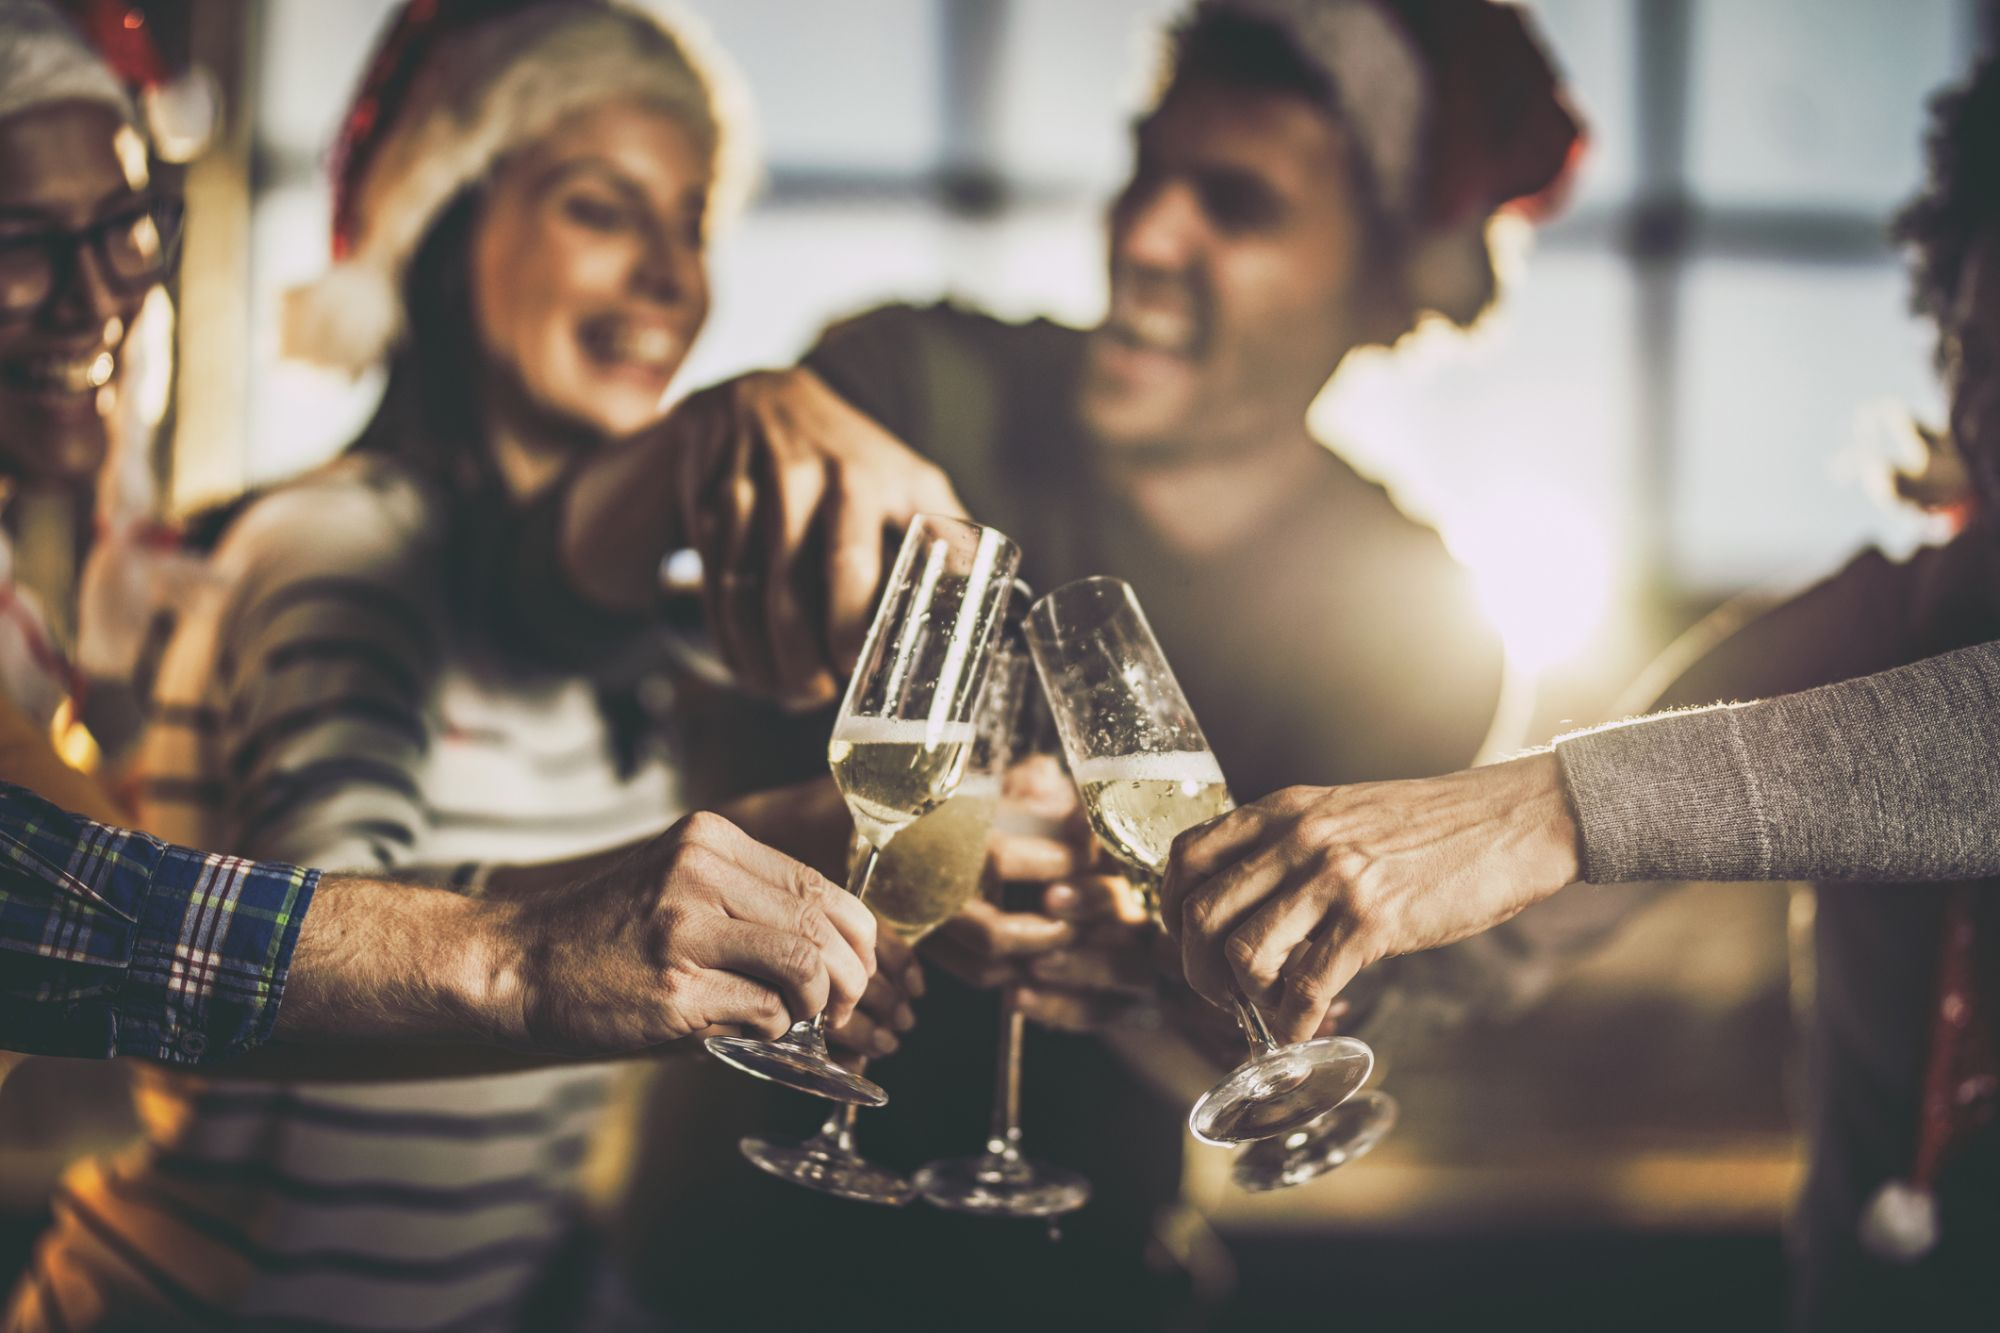 Company Holiday Party This Week? In the Era of #MeToo, Exercise ... Caution.